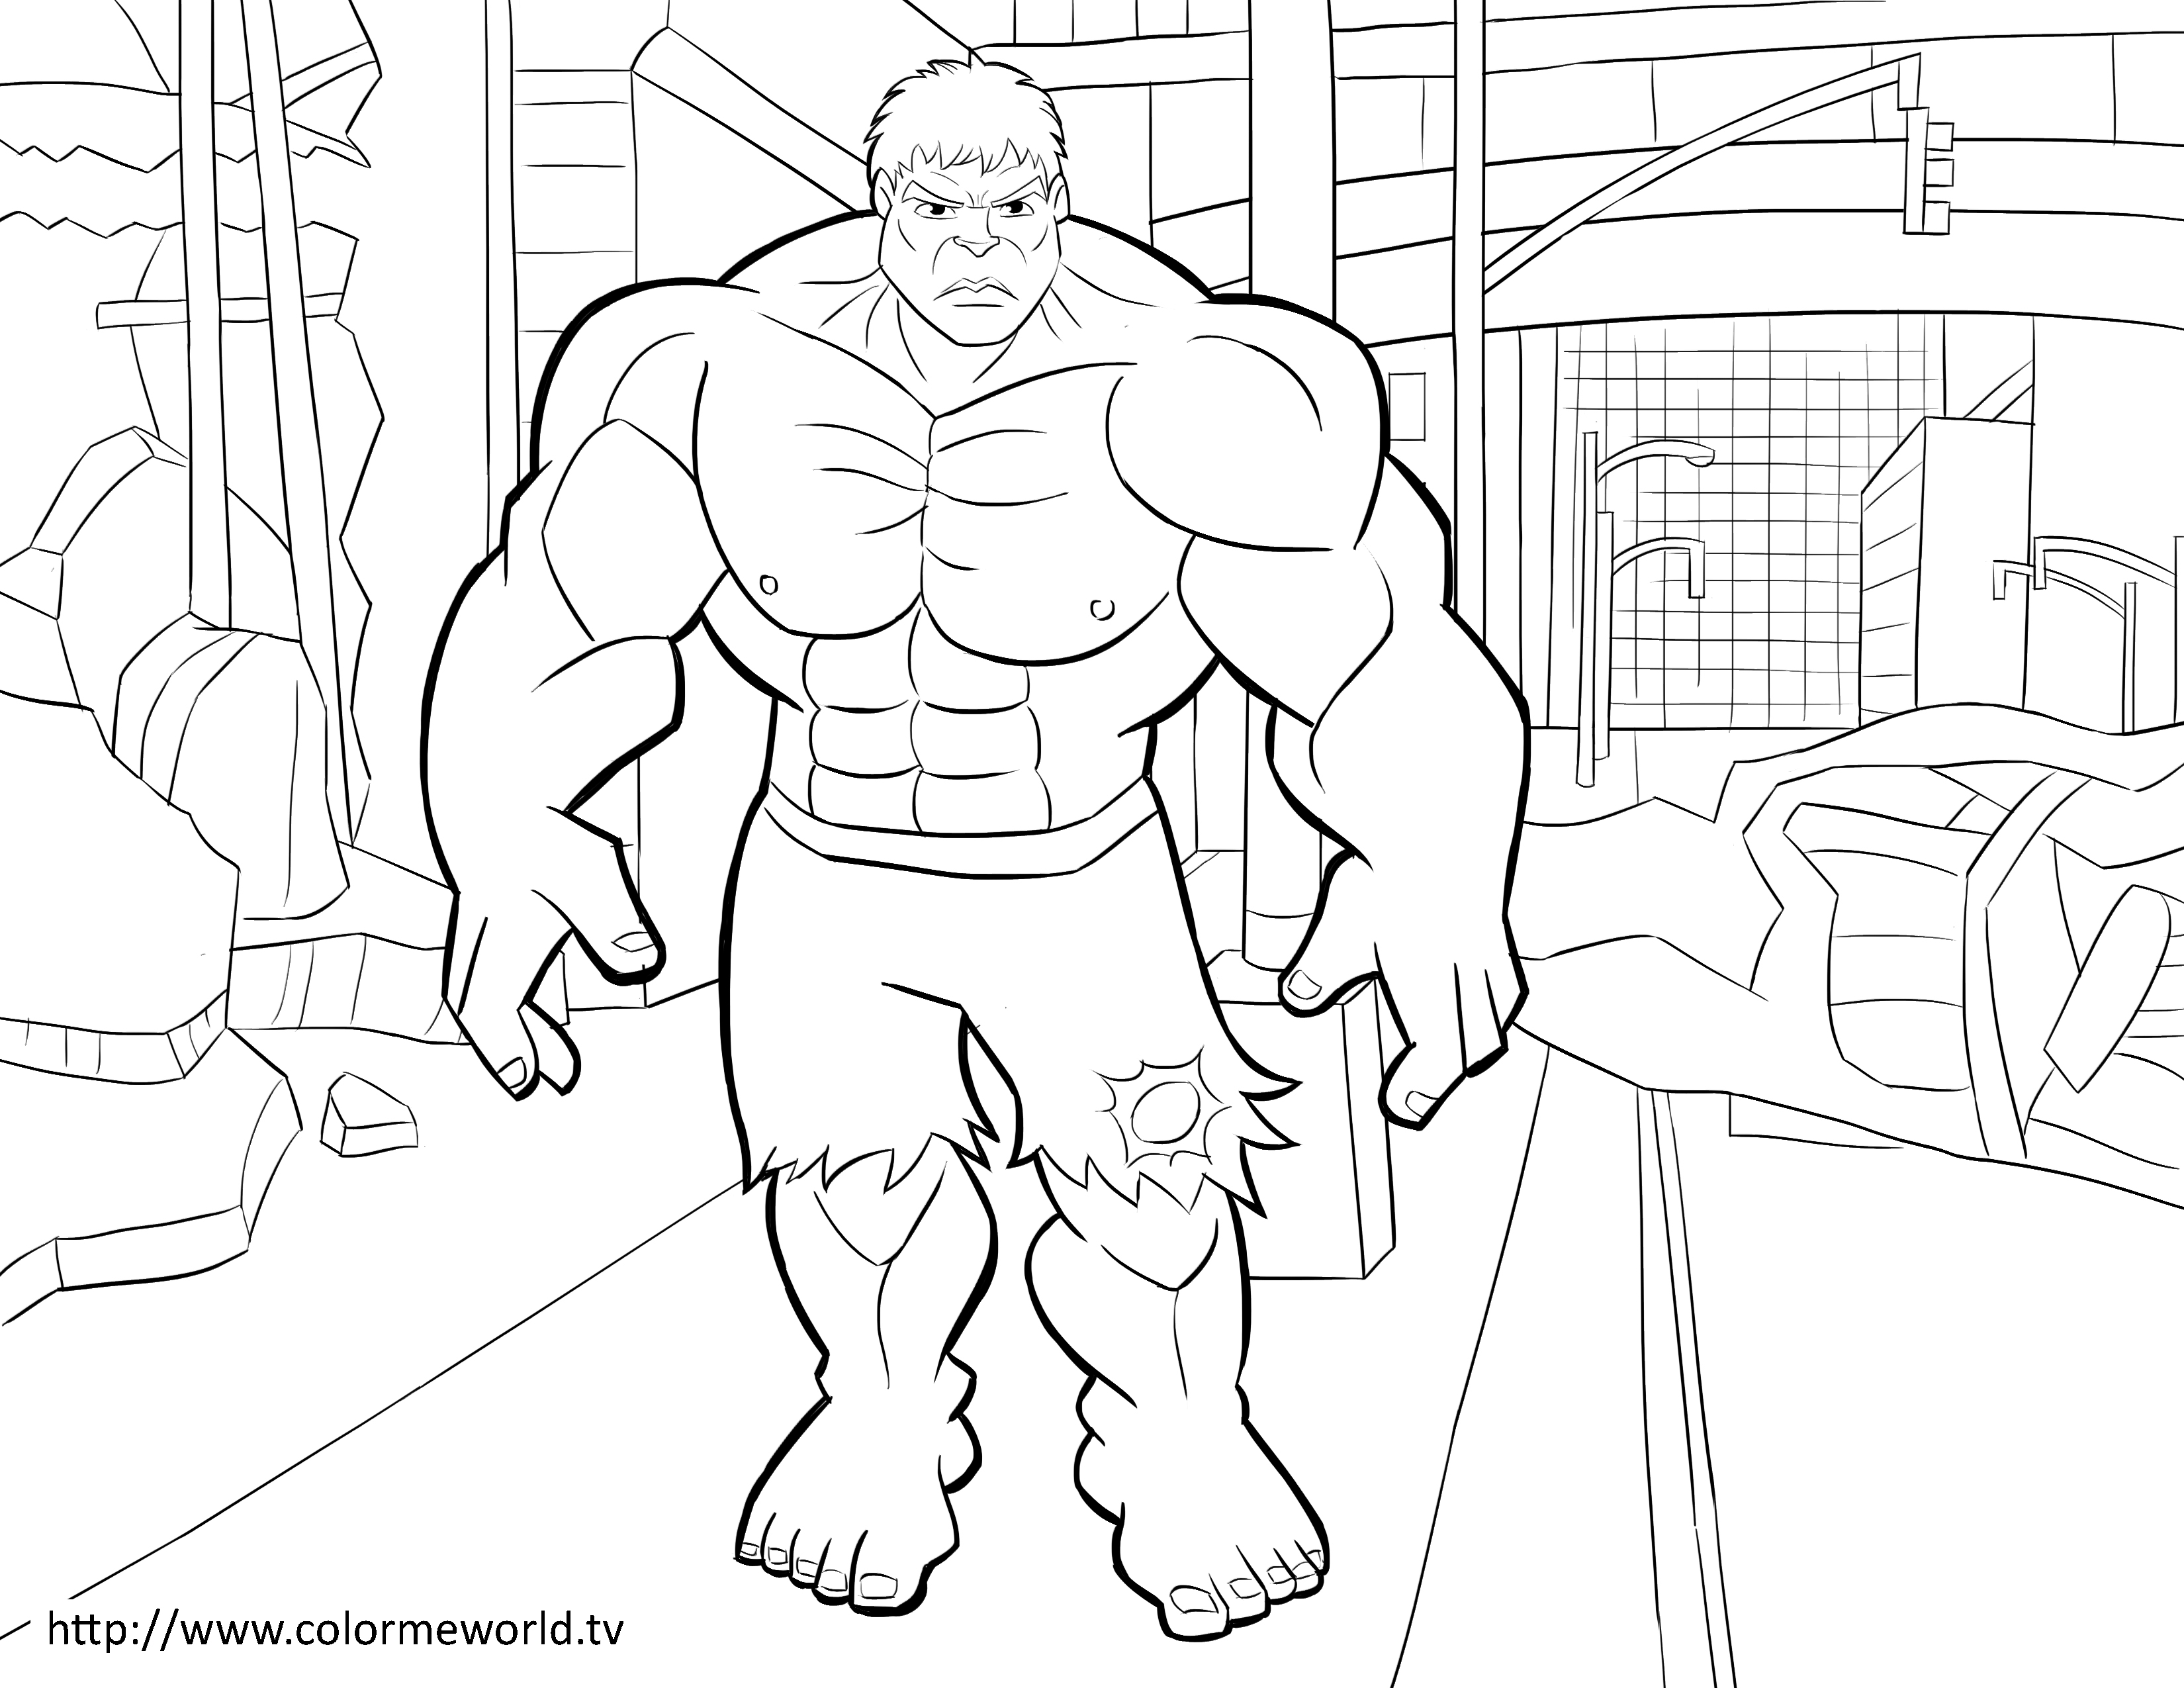 3300x2550 Marvel Coloring Pages Free Printable Marvel Pdf Coloring Sheets